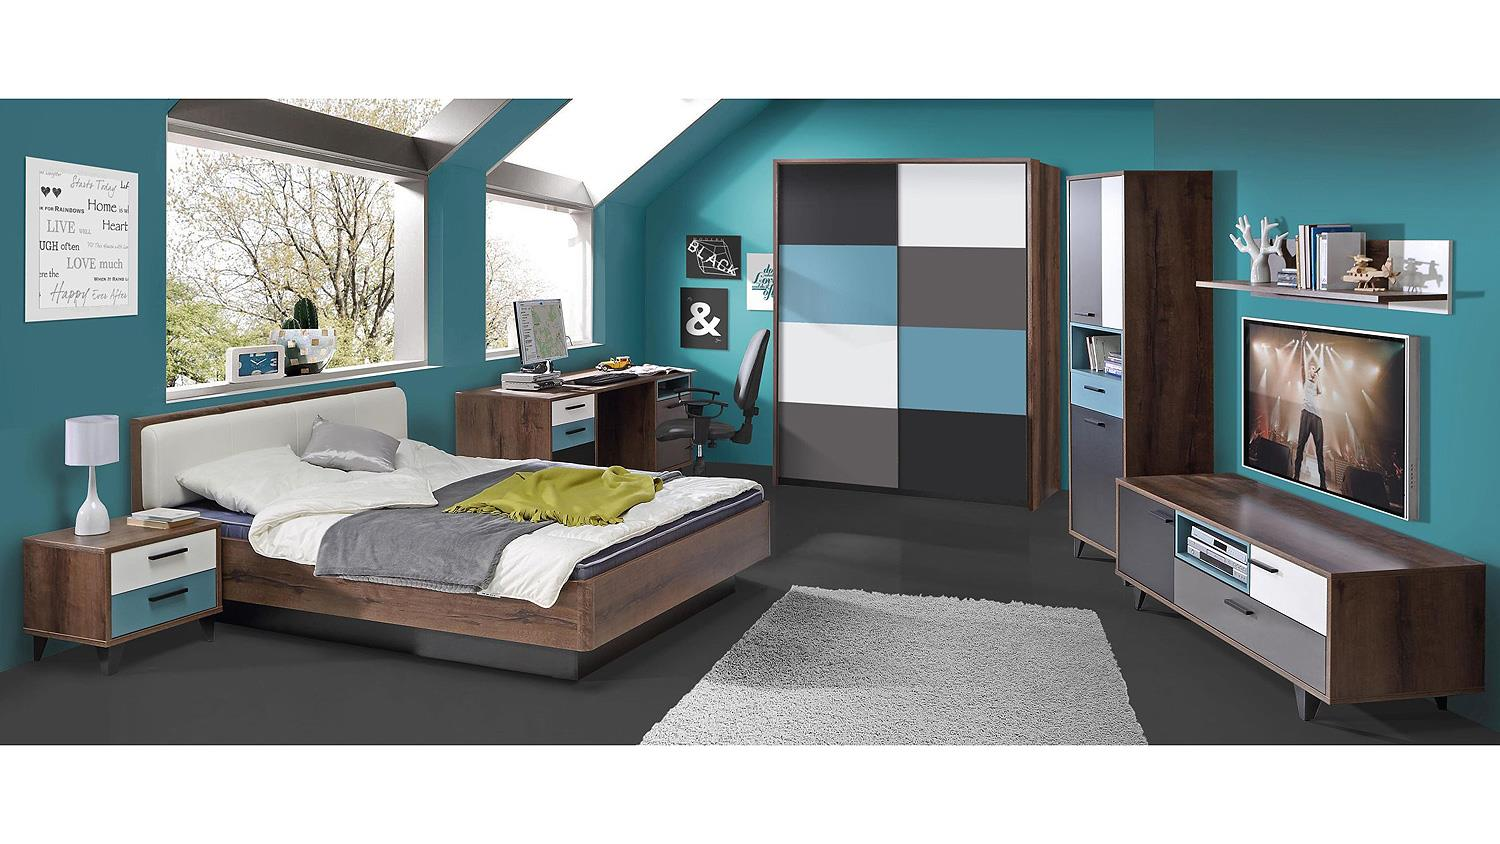 schwebet renschrank raven schlammeiche wei schwarz gr n grau. Black Bedroom Furniture Sets. Home Design Ideas